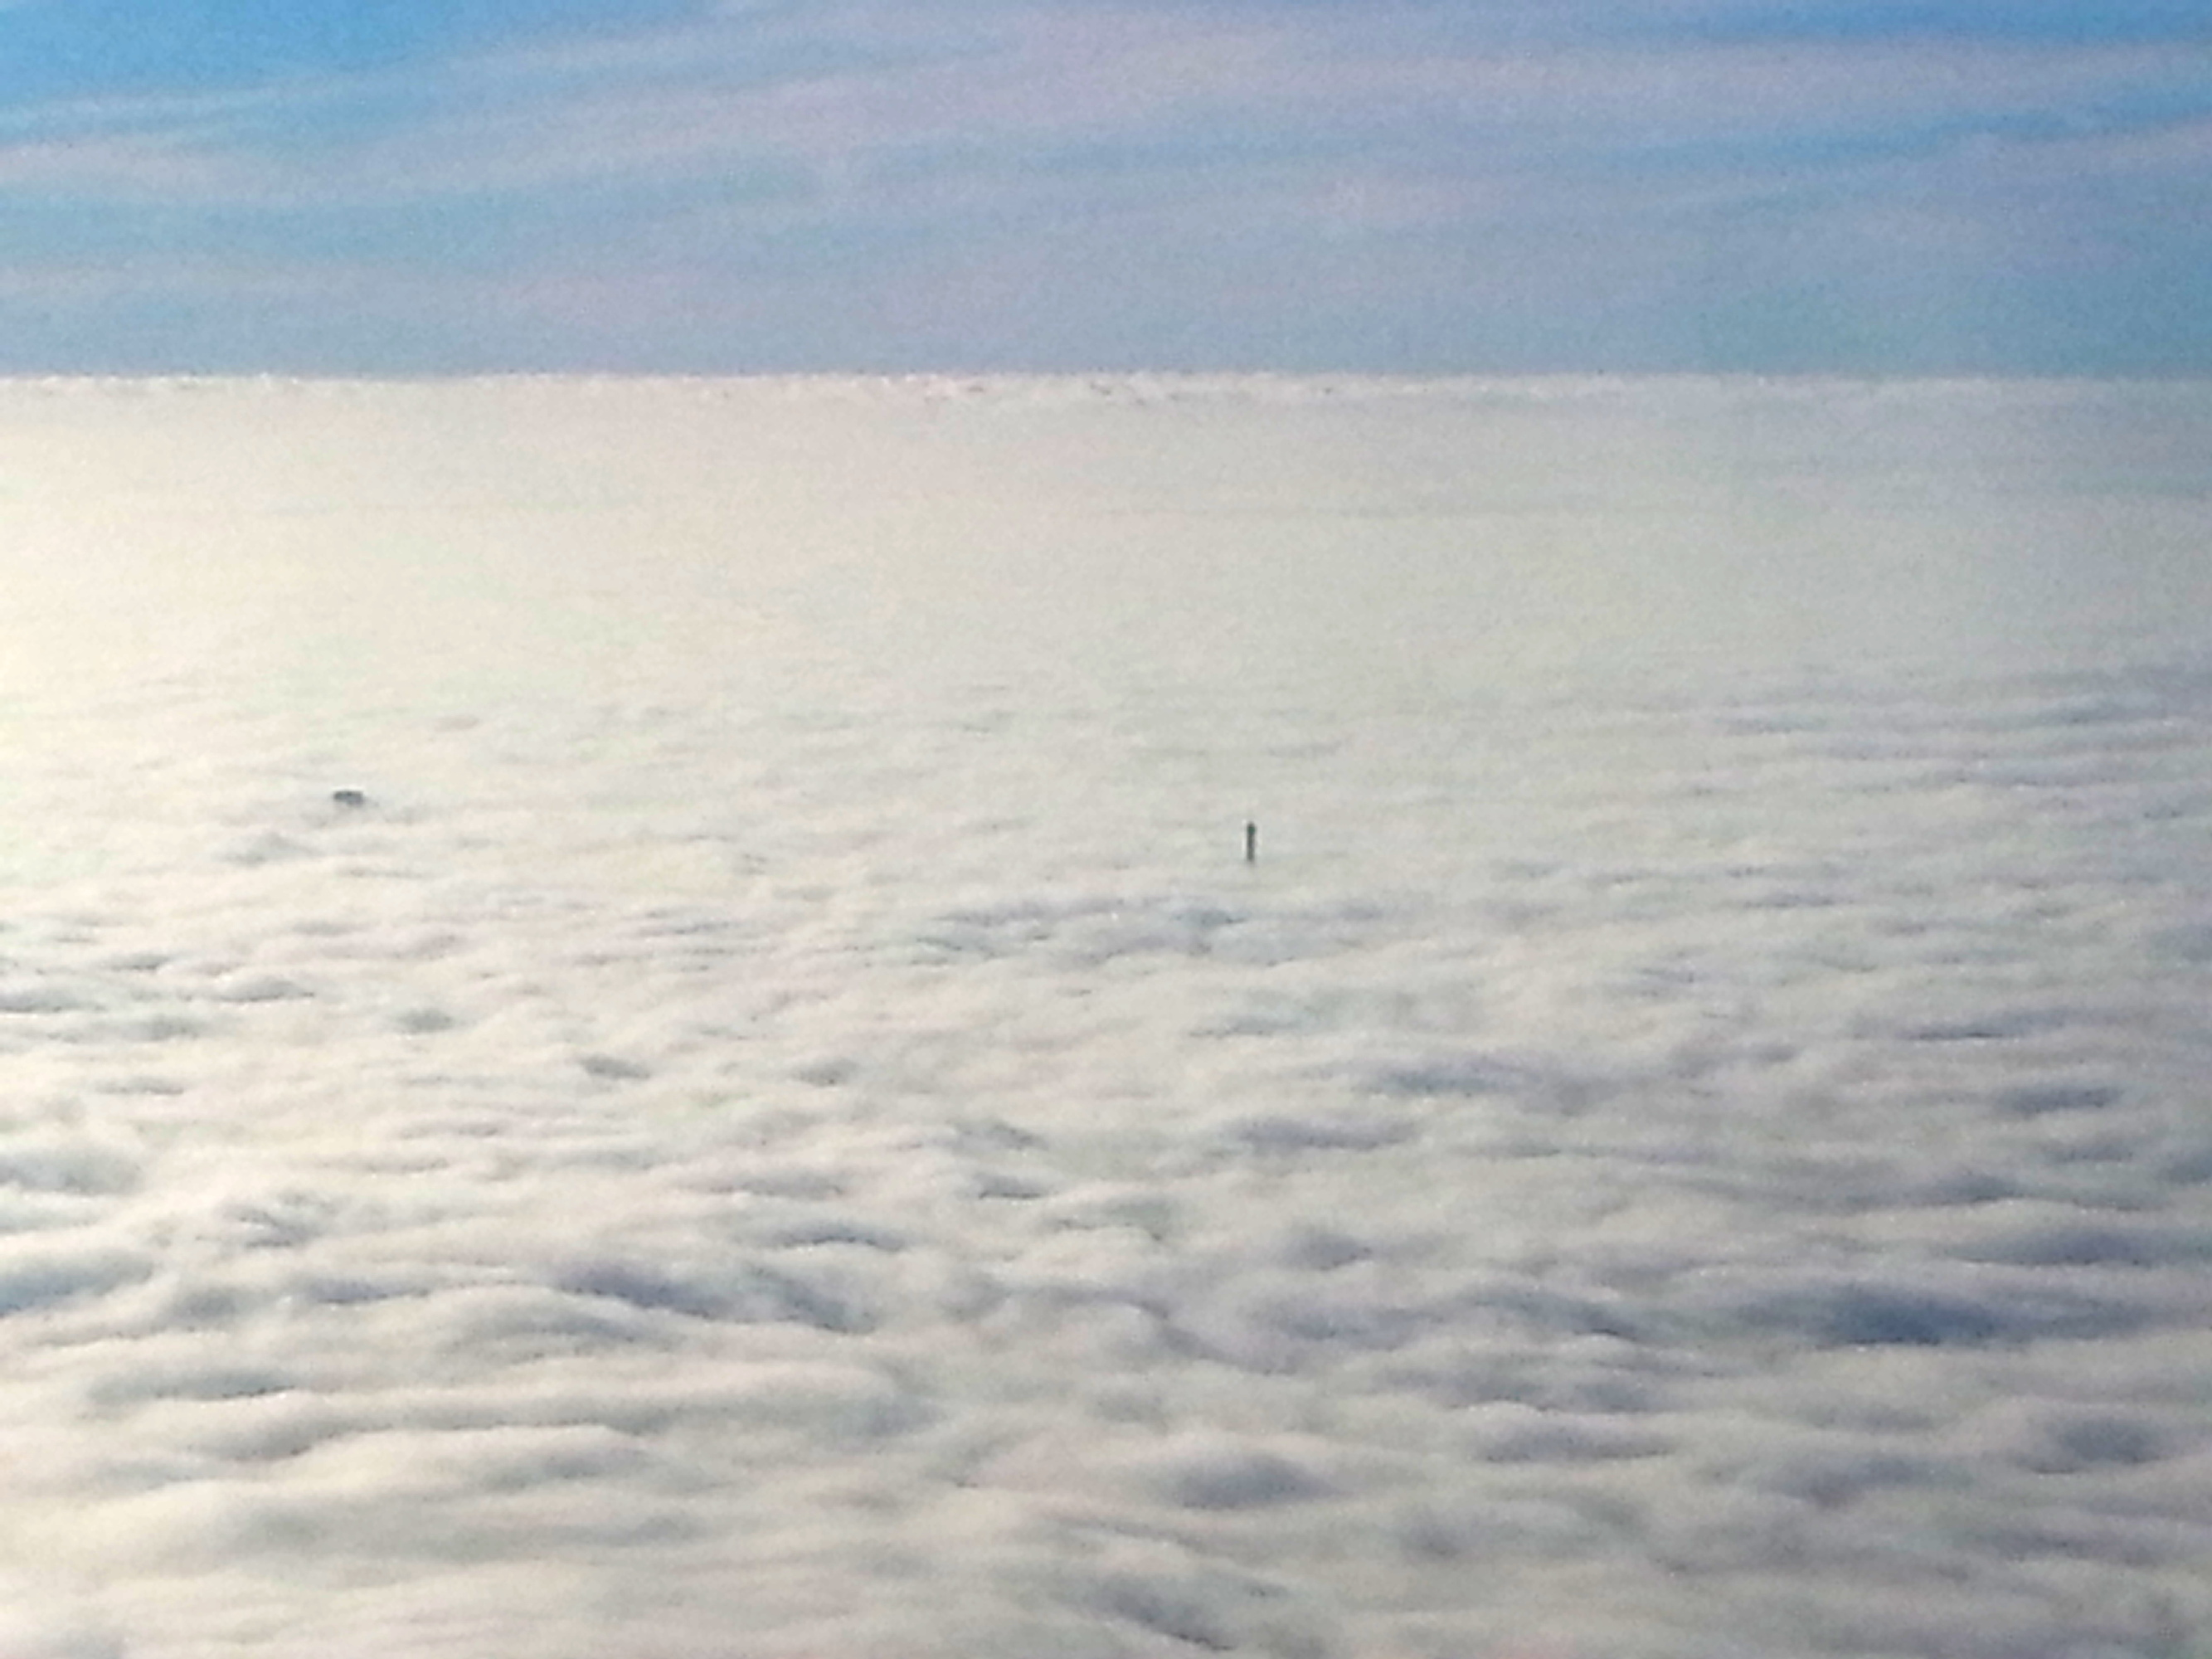 Amazing: Tour Eiffel's summit rising through the low clouds over Paris